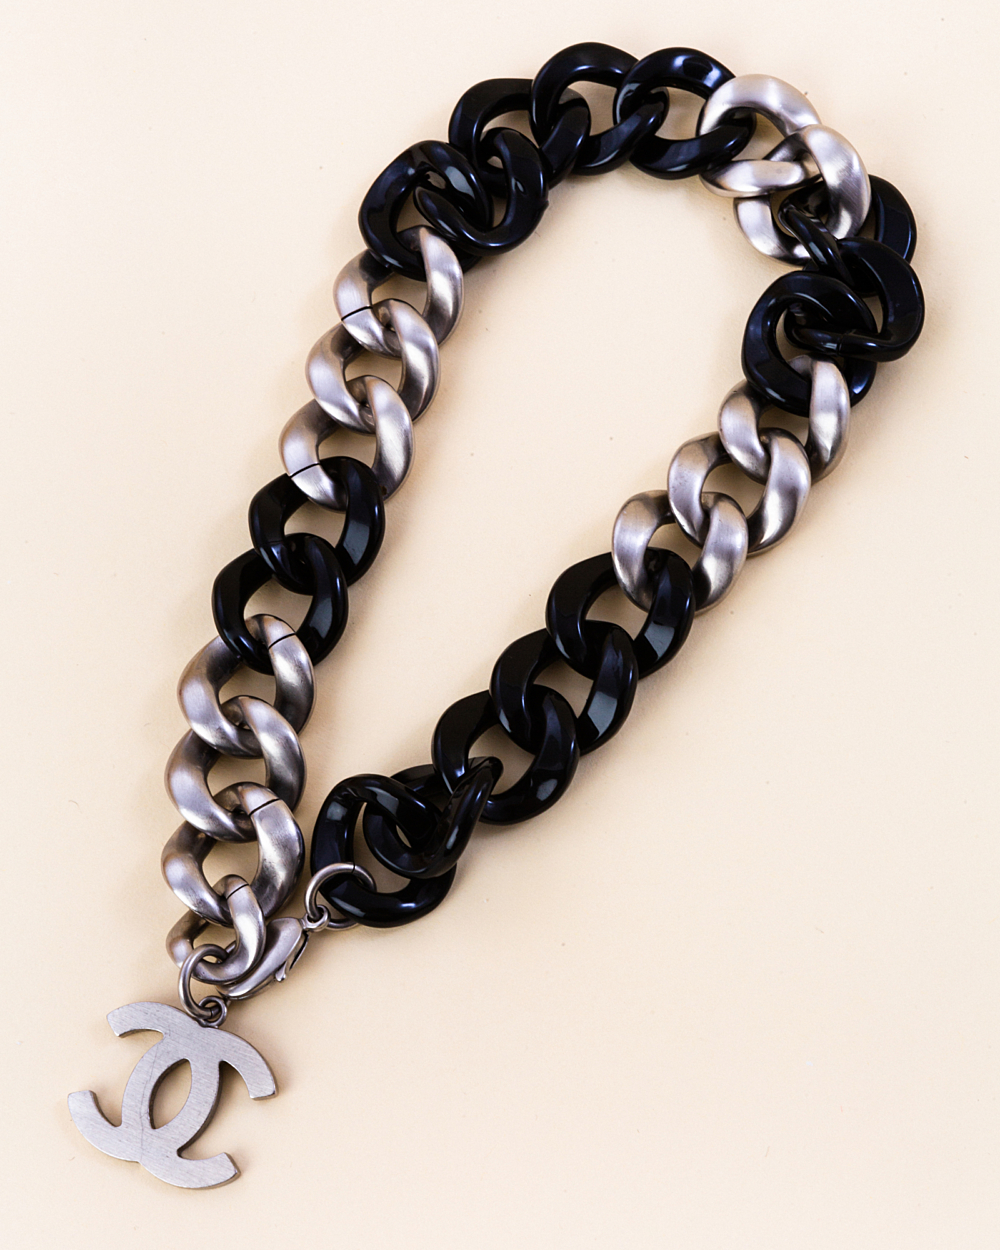 Chanel curb chain